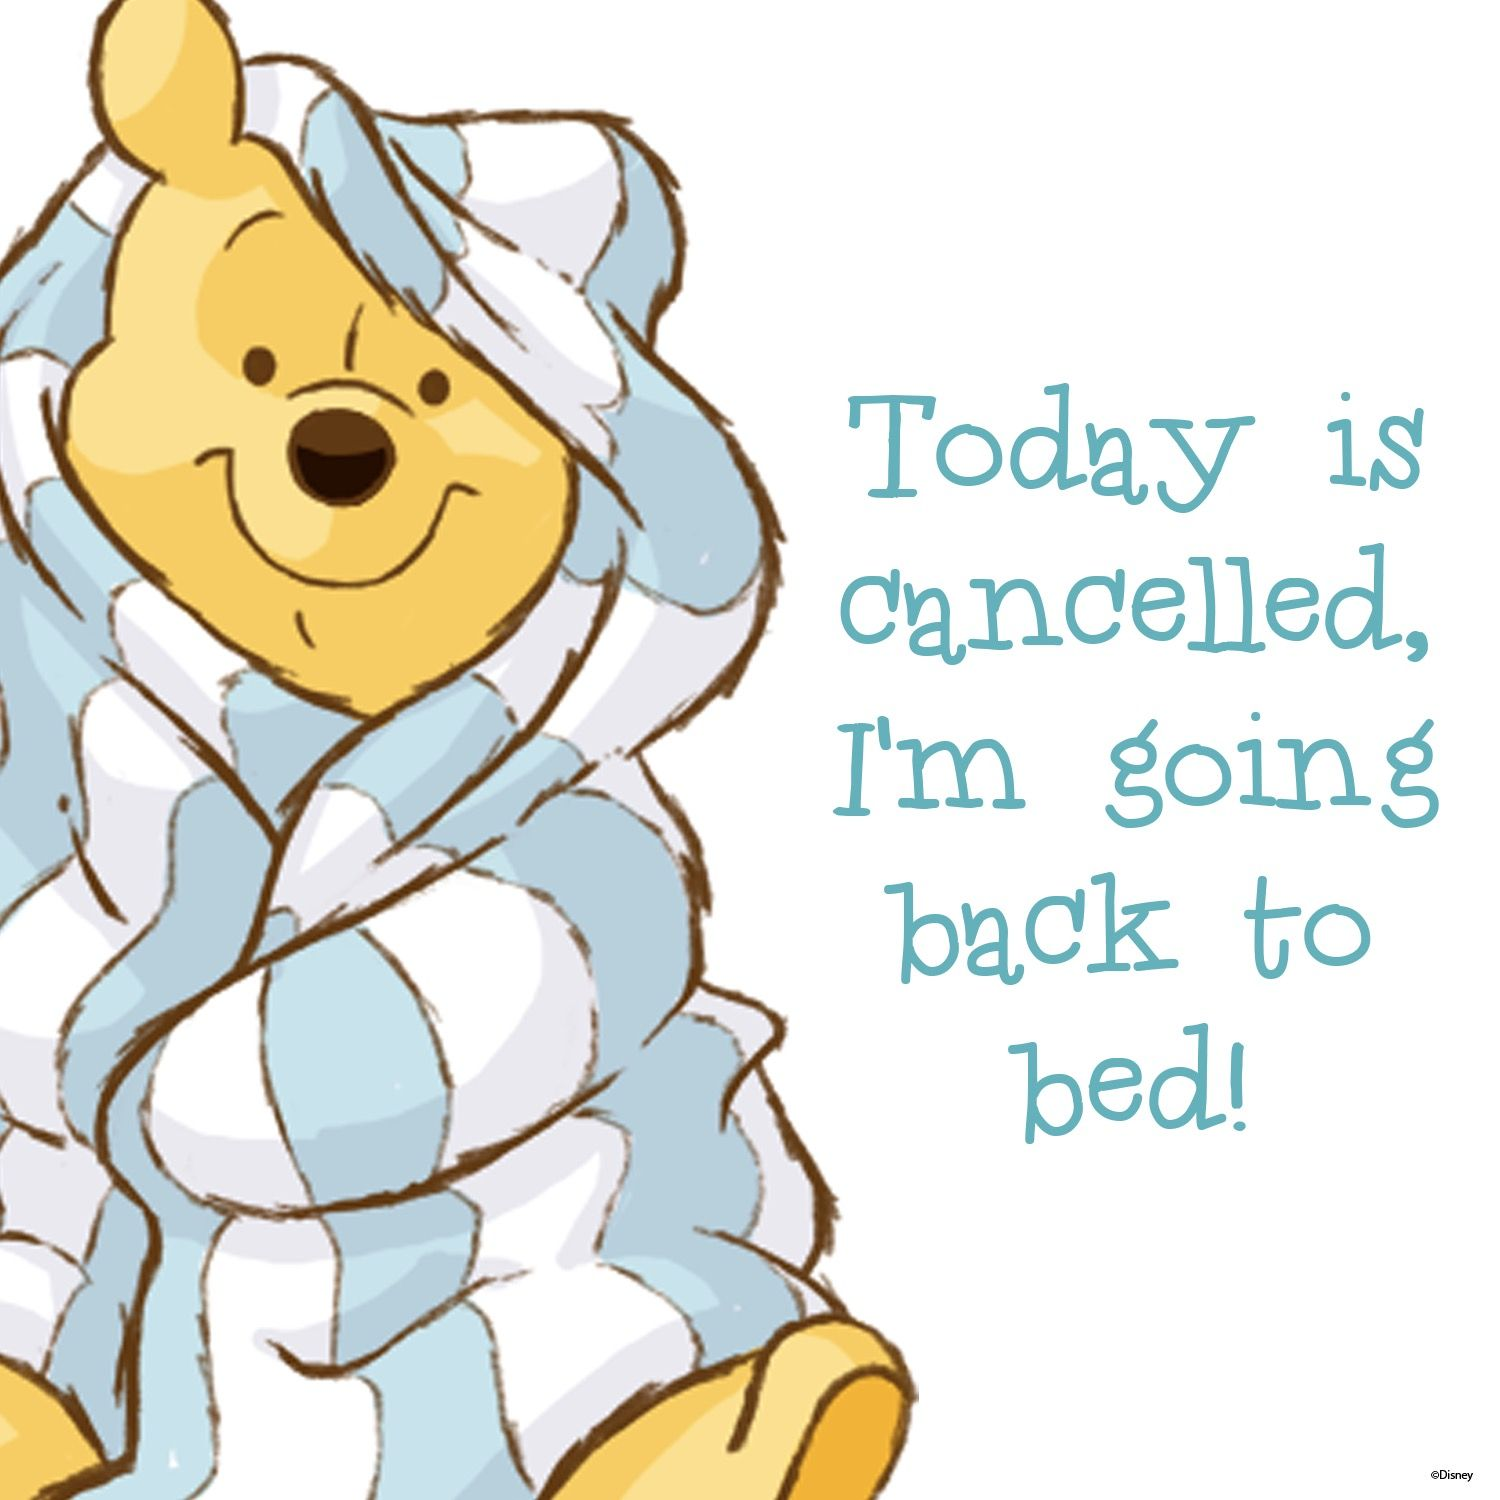 That is how I feel in the morning Winnie the pooh quotes